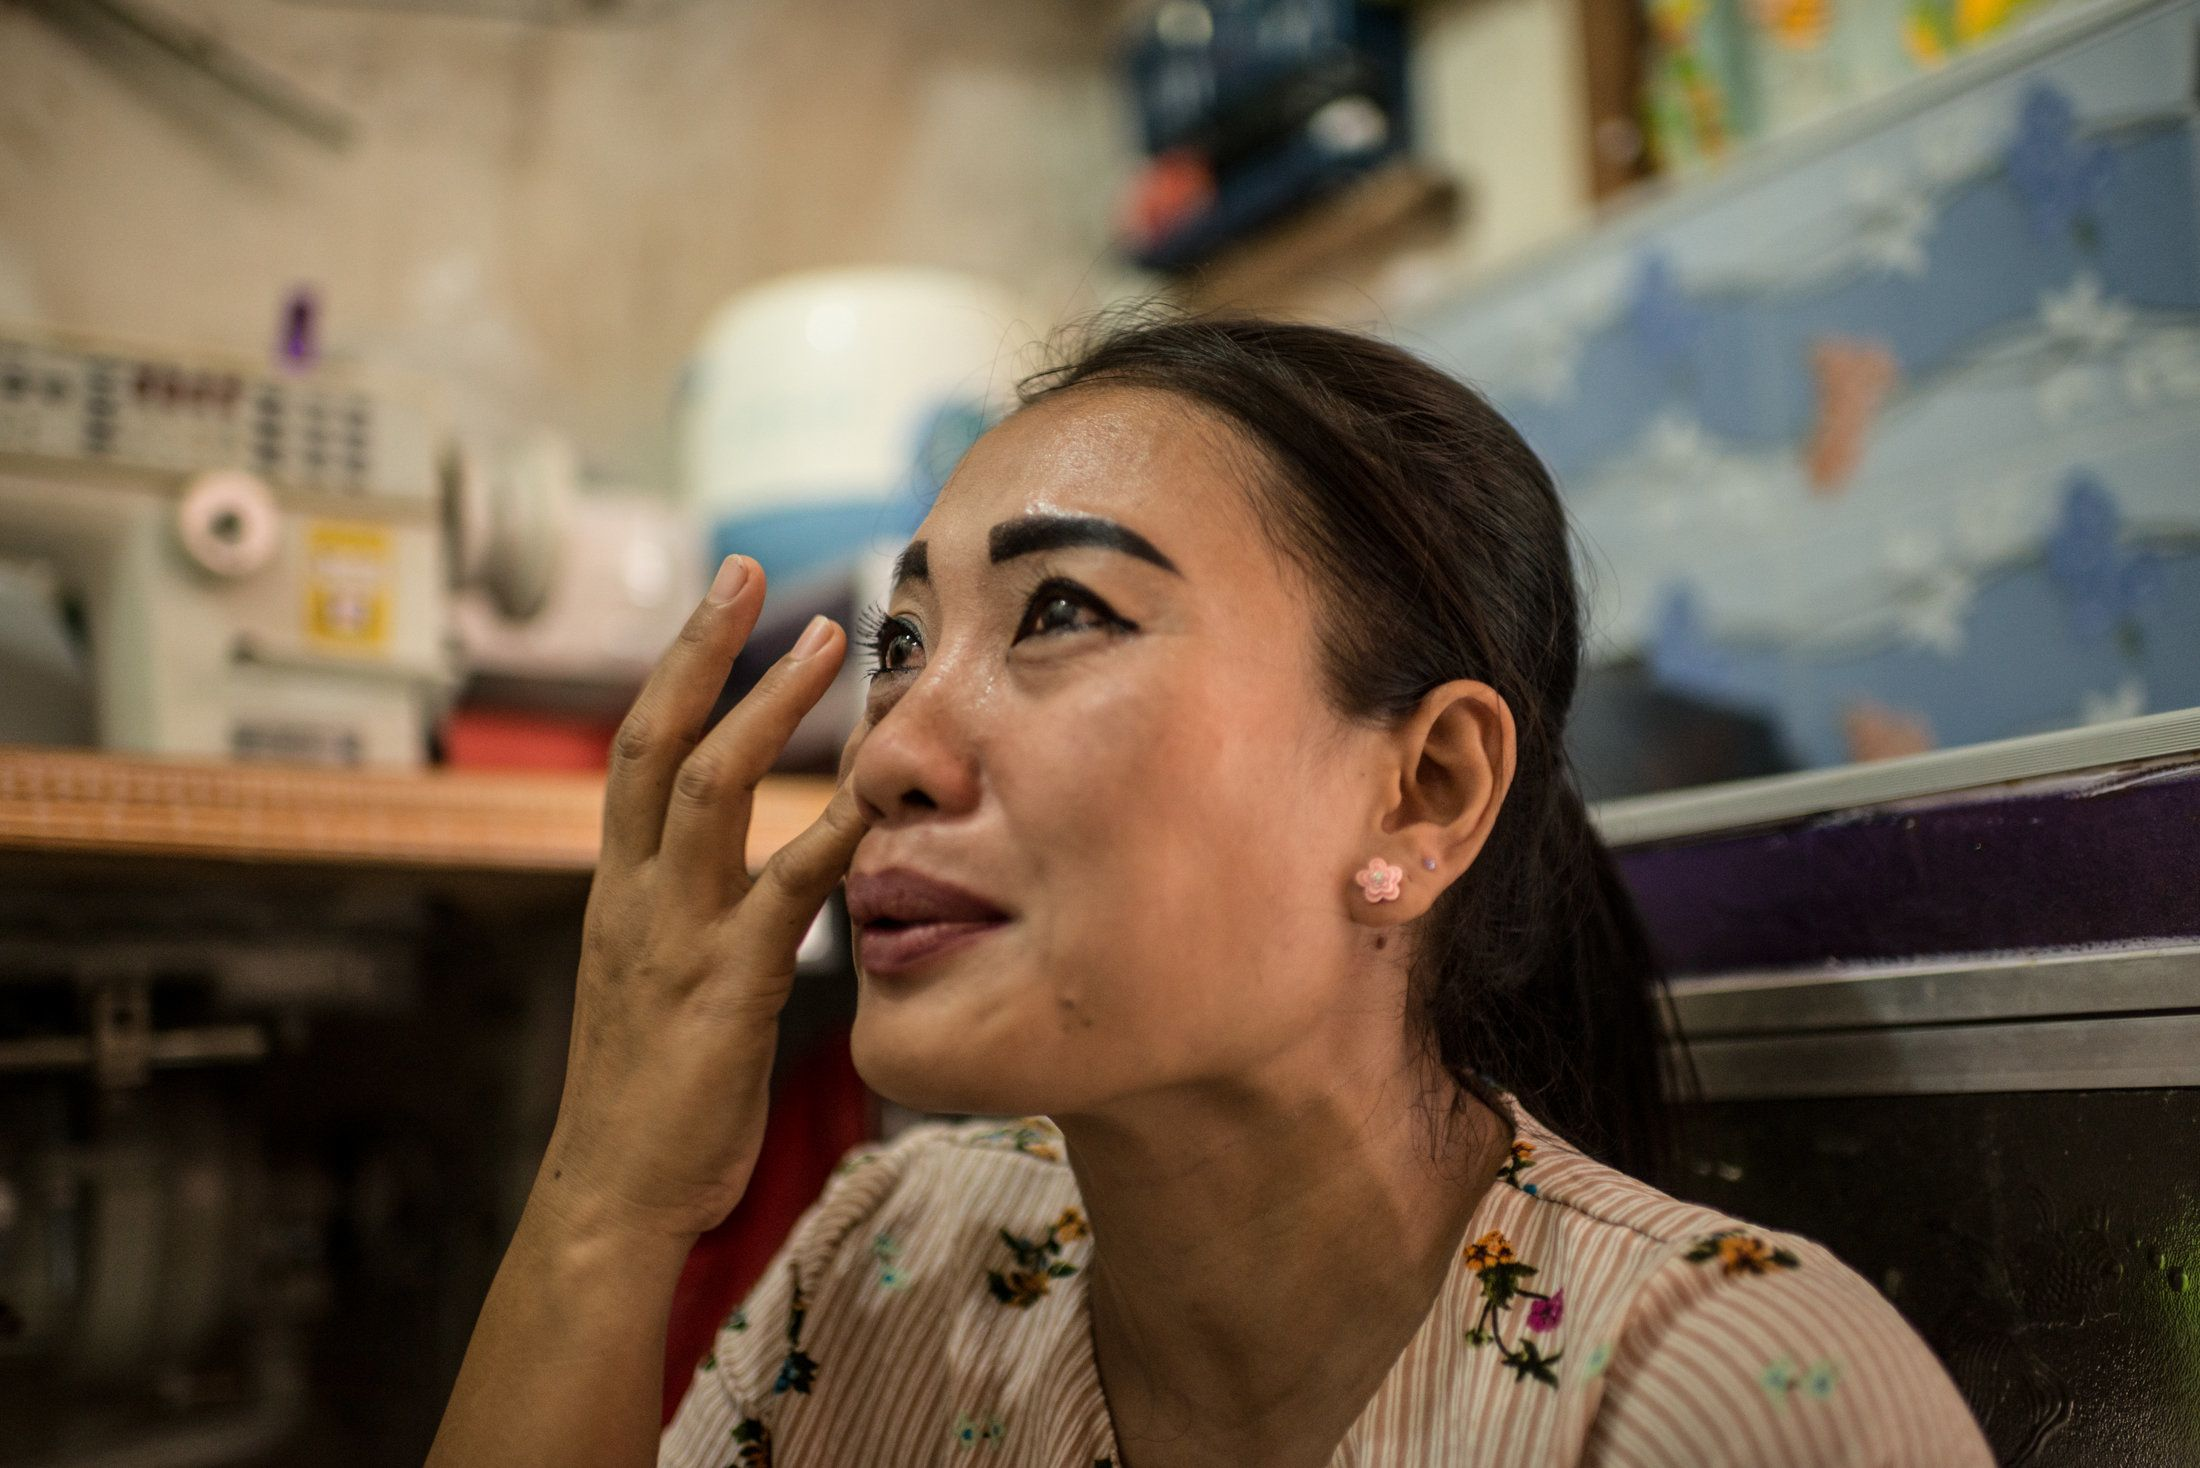 Istiy cries inside her tiny rental room while speaking of the two daughters she left behind in her village.